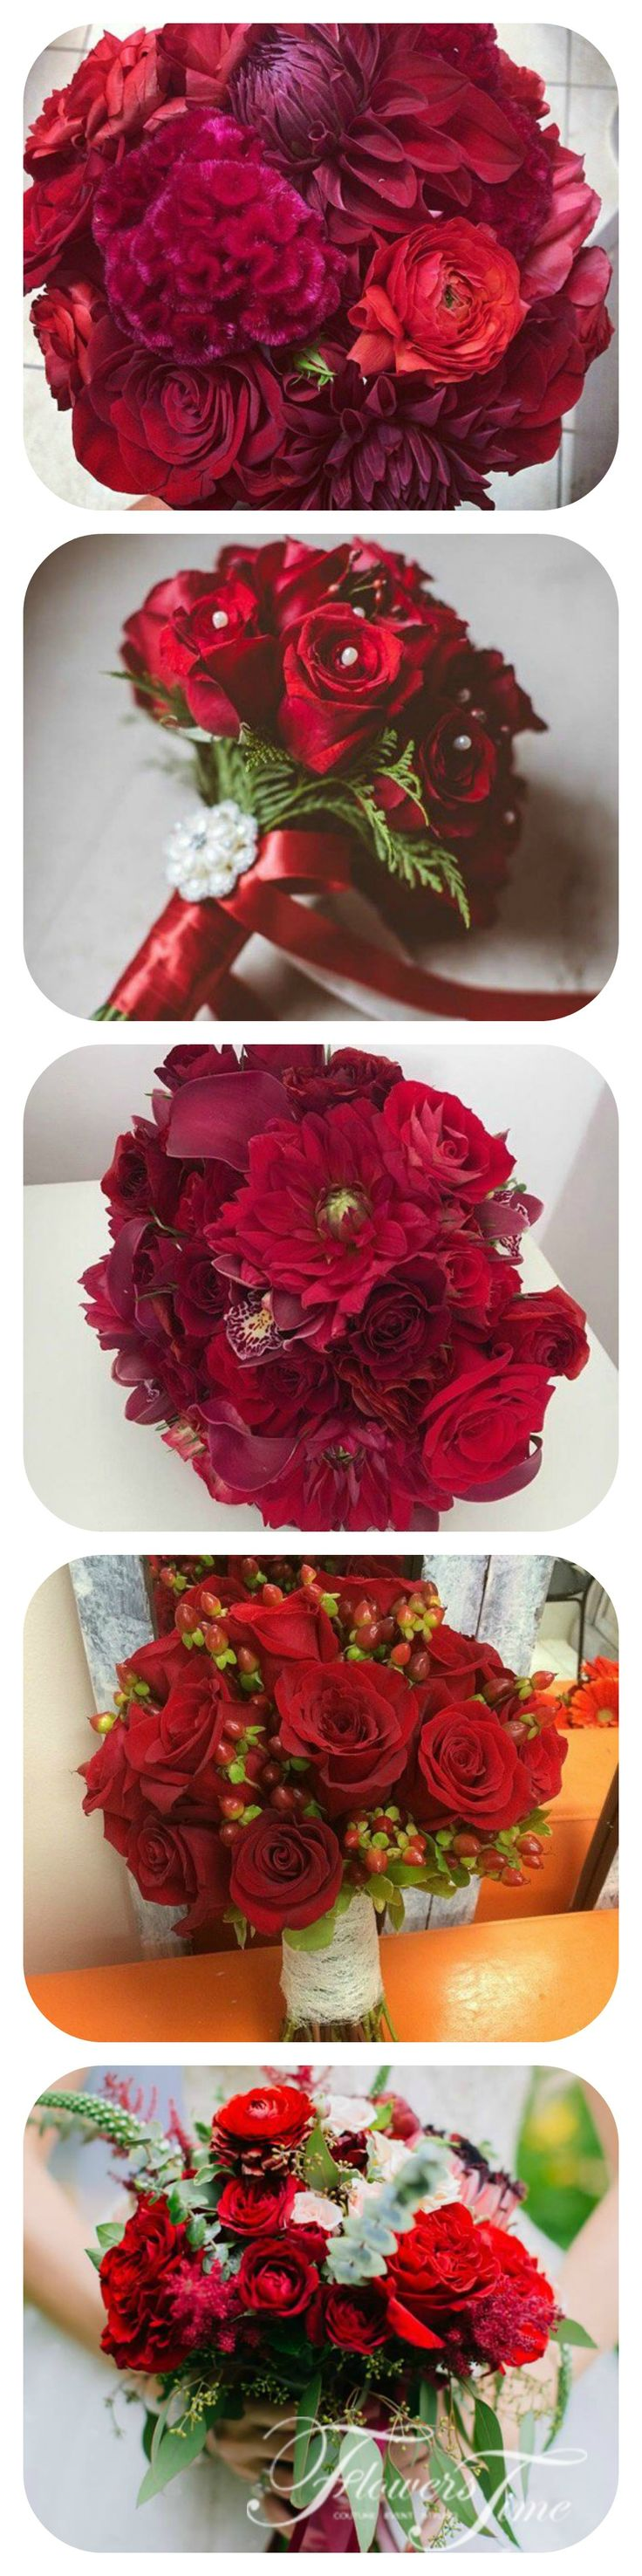 Red bridal bouquets by Flowers Time #wedding#roses#redrose#collage#